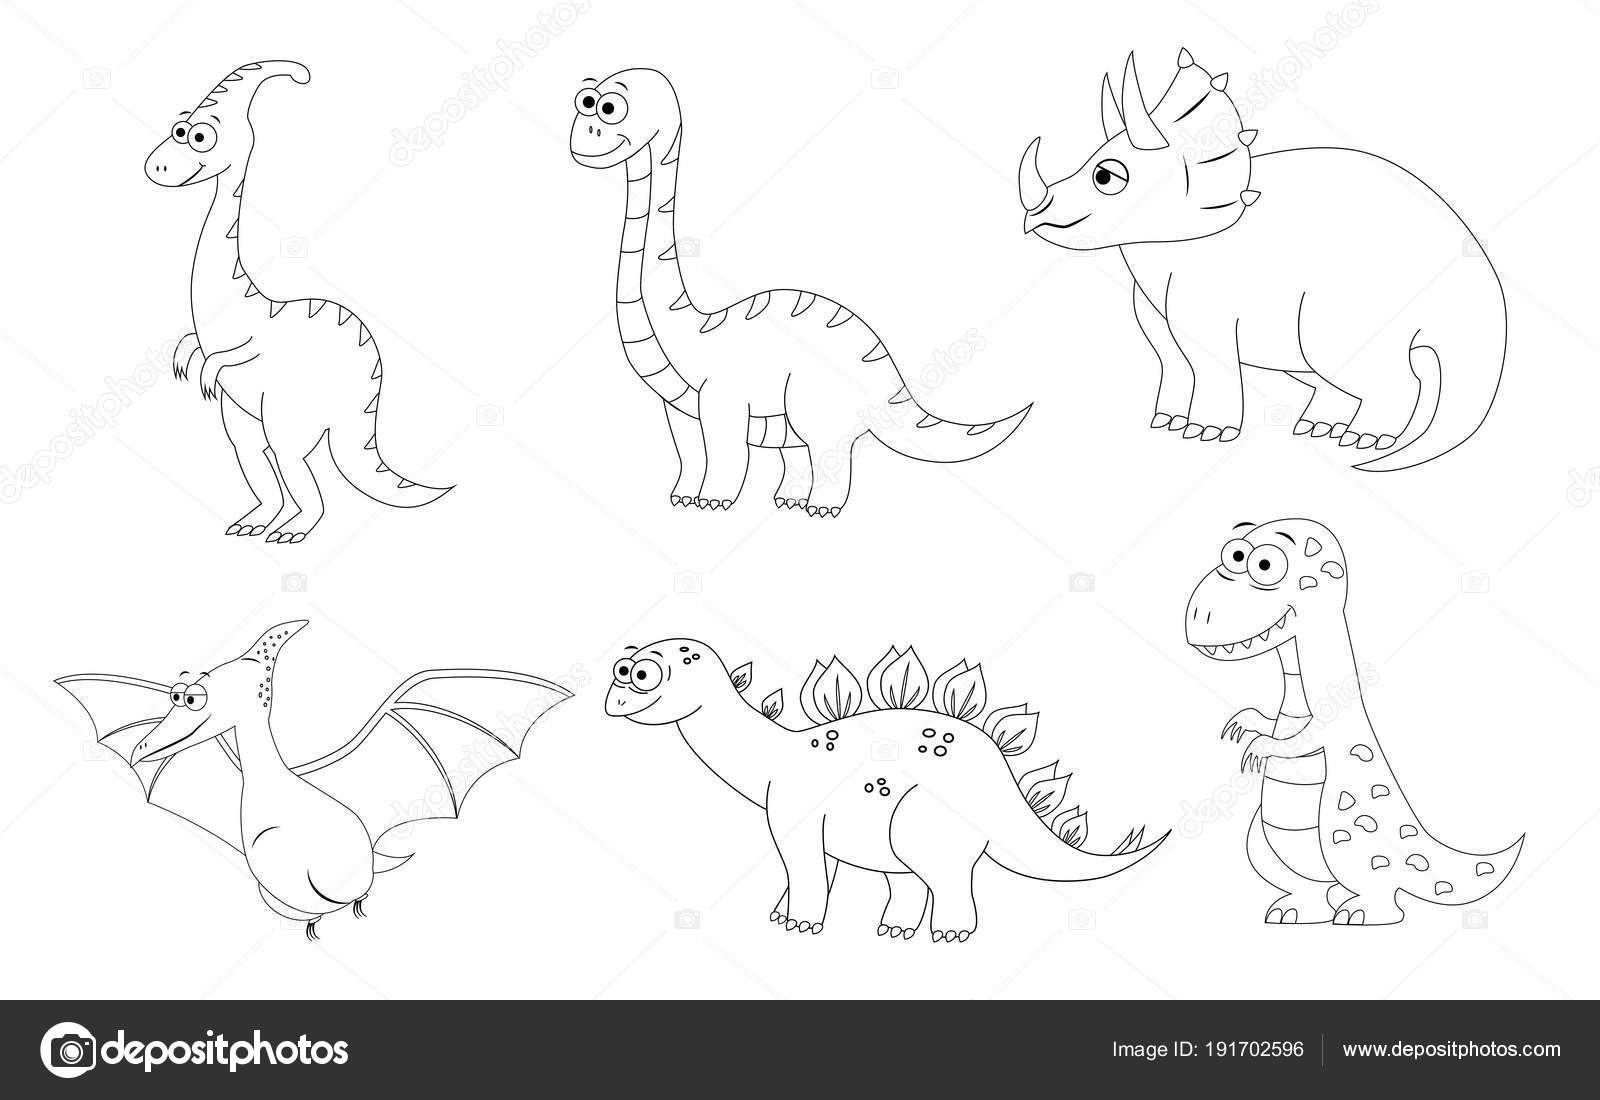 Coloring Page For Preschool Children Set Of Different Cartoon D